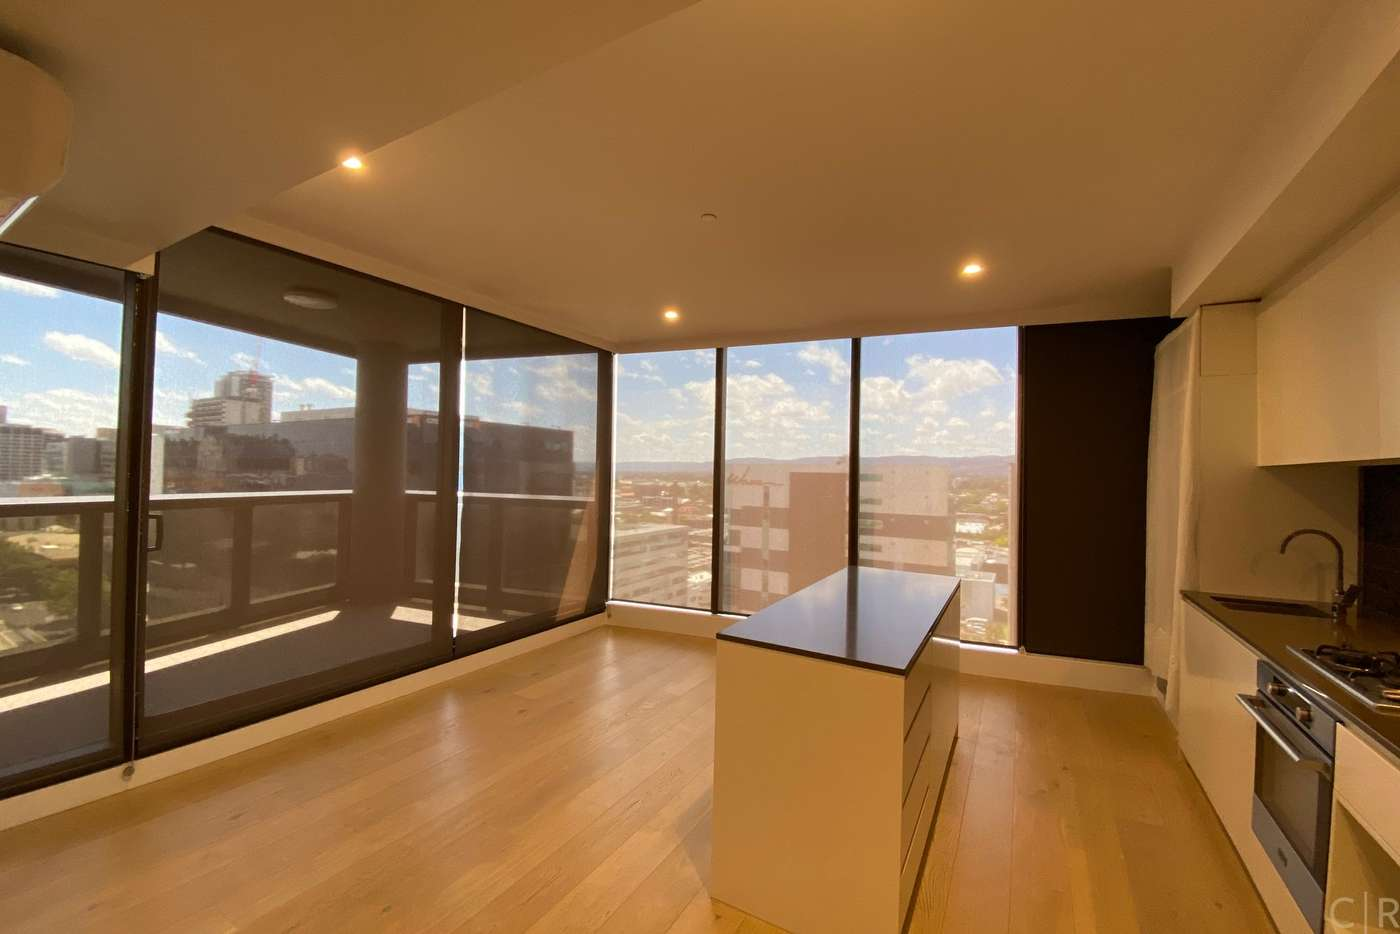 Seventh view of Homely apartment listing, 1206/421 King William Street, Adelaide SA 5000